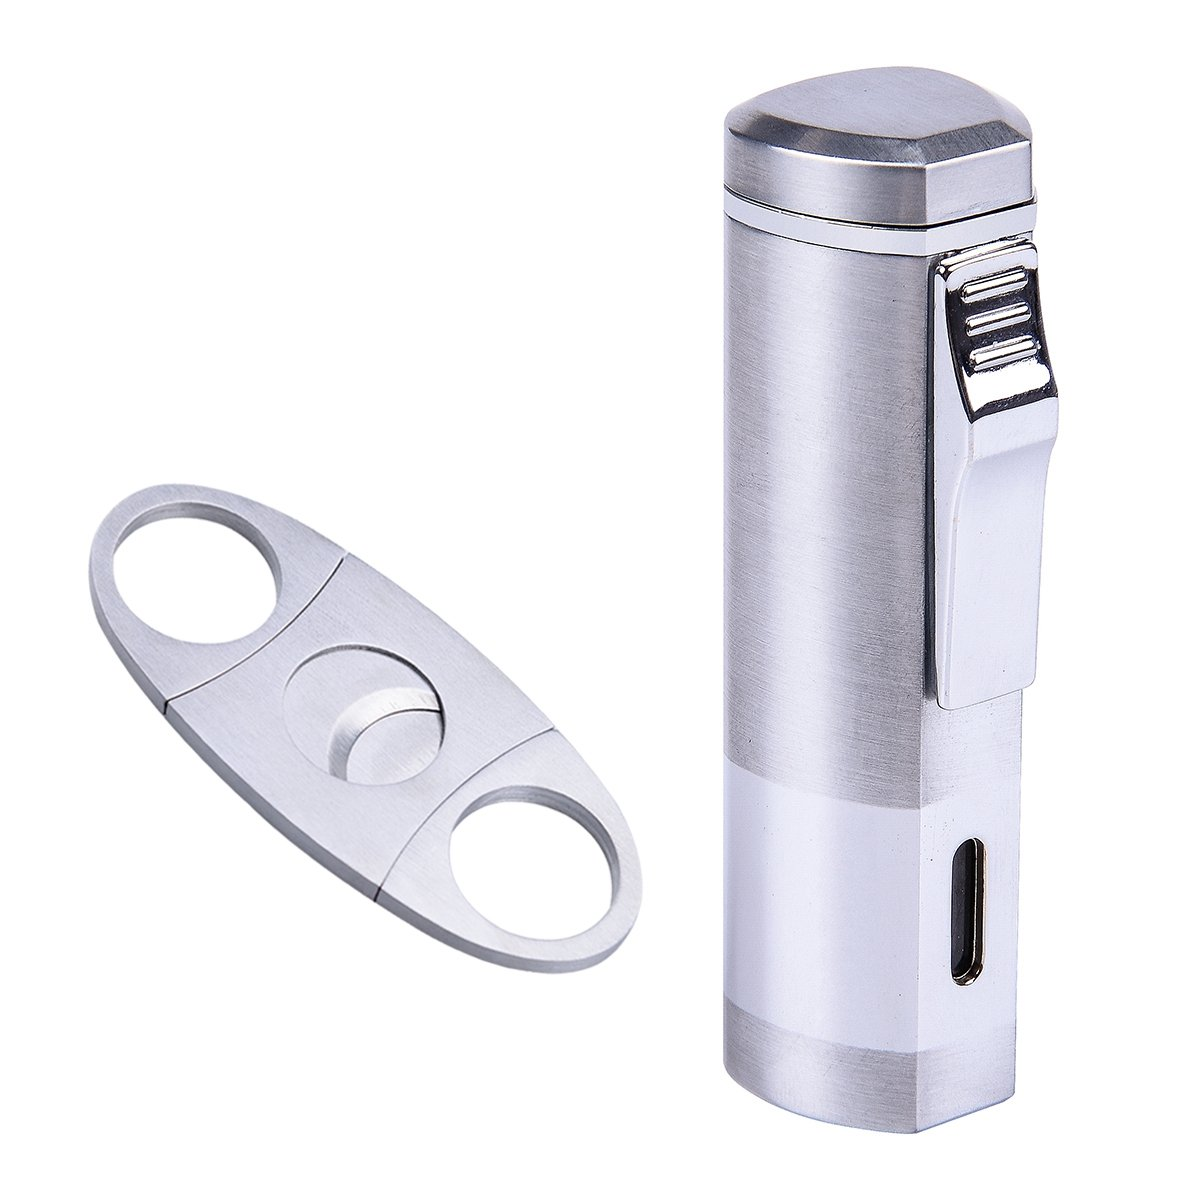 Cigarette Cigar Lighter Triple Jet Flame Butane Torch Combo Set with Cigar Punch Cutter Tool